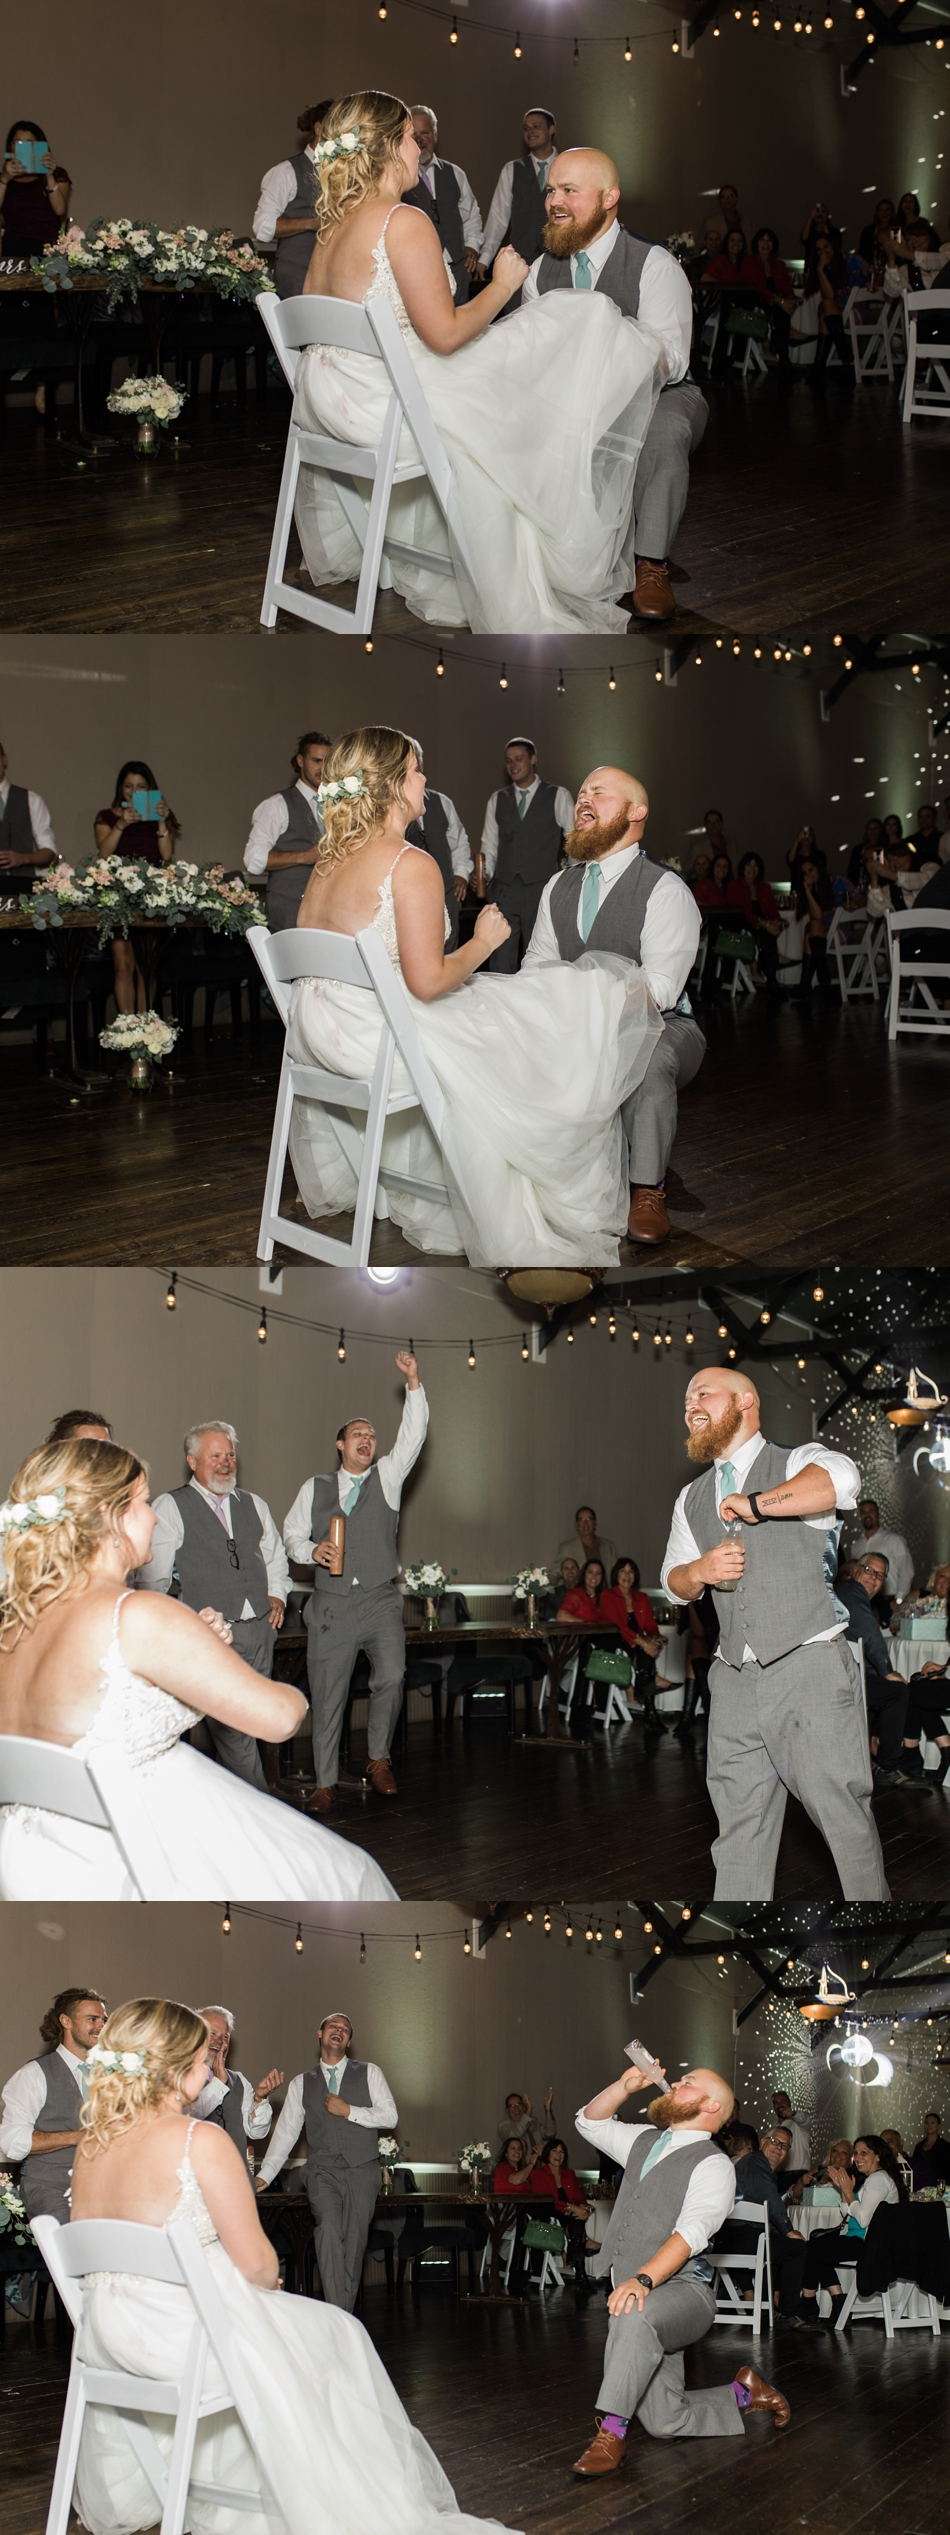 Photo of funny garter toss at a Hidden Meadows Farms wedding in Snohomish, a rustic yet elegant wedding venue near Seattle.   Joanna Monger Photography